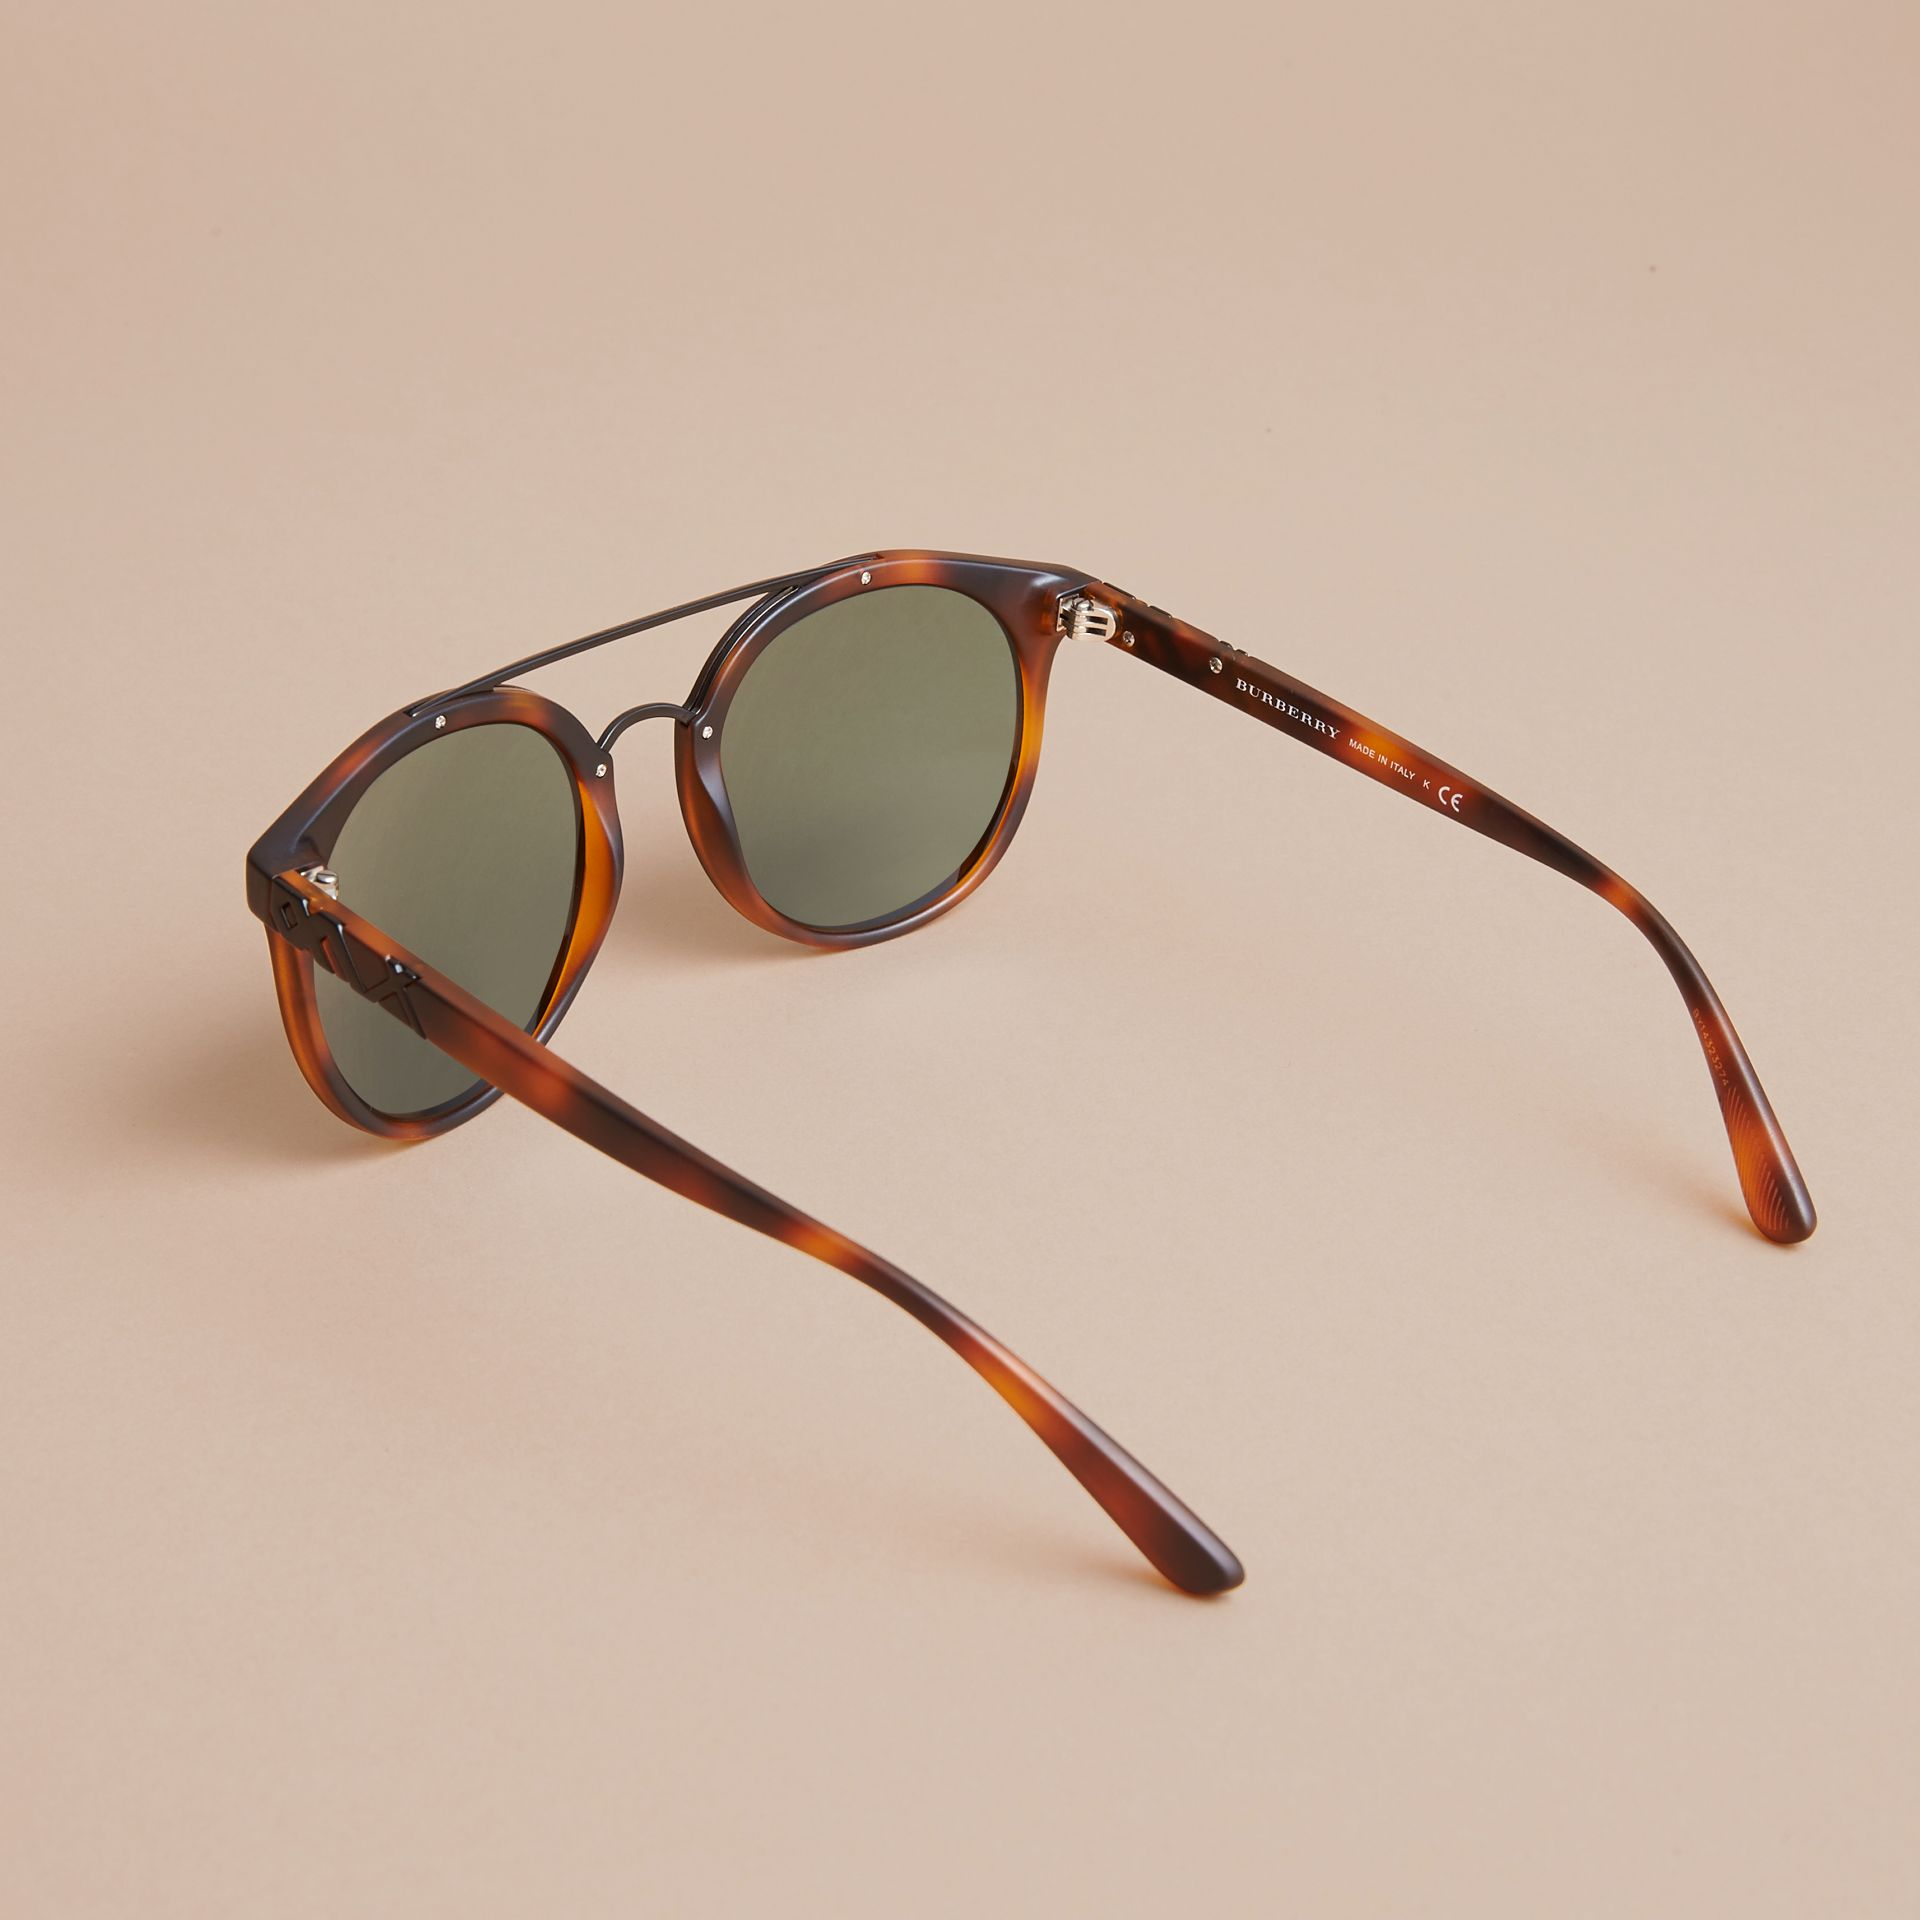 Top Bar Round Frame Sunglasses in Brown - Men | Burberry - gallery image 3